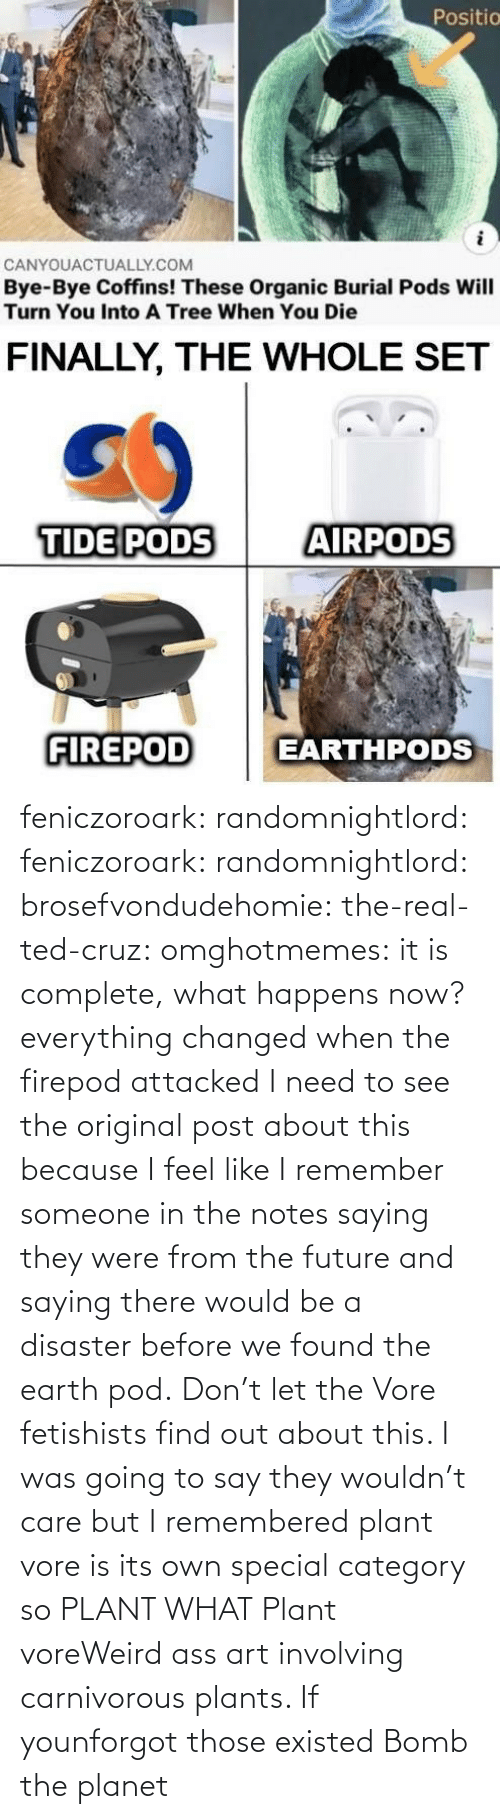 Because I: feniczoroark:  randomnightlord:  feniczoroark:  randomnightlord:  brosefvondudehomie: the-real-ted-cruz:  omghotmemes: it is complete, what happens now? everything changed when the firepod attacked    I need to see the original post about this because I feel like I remember someone in the notes saying they were from the future and saying there would be a disaster before we found the earth pod.    Don't let the Vore fetishists find out about this.    I was going to say they wouldn't care but I remembered plant vore is its own special category so   PLANT WHAT   Plant voreWeird ass art involving carnivorous plants. If younforgot those existed   Bomb the planet